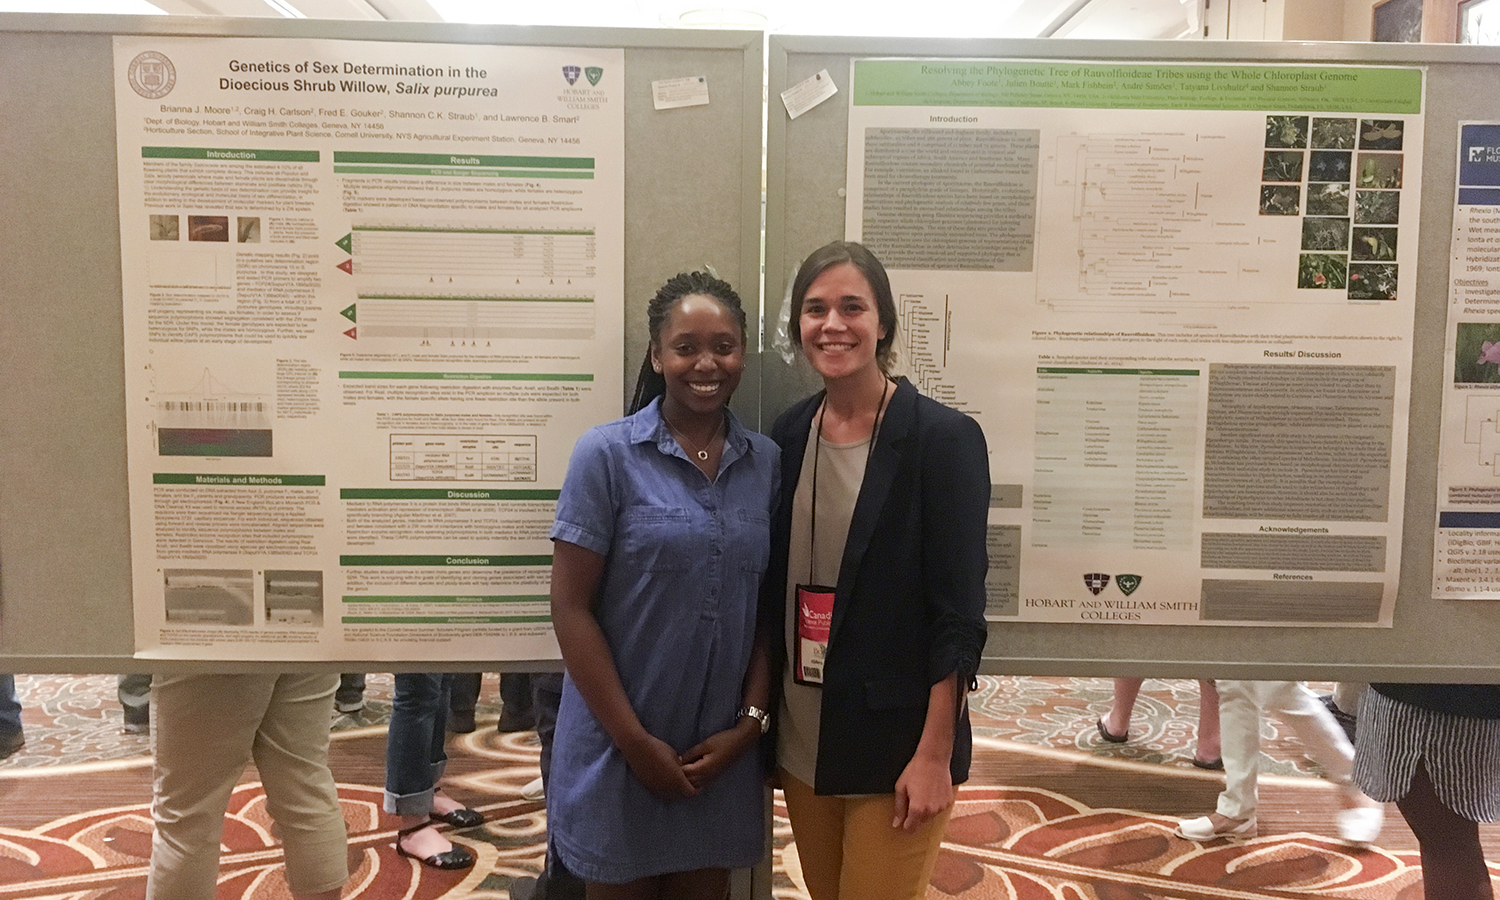 Brianna Moore '18 and Abbey Foote '17 pose for a photo after presenting their research at the Botany 2017 conference in Fort Worth, Texas.